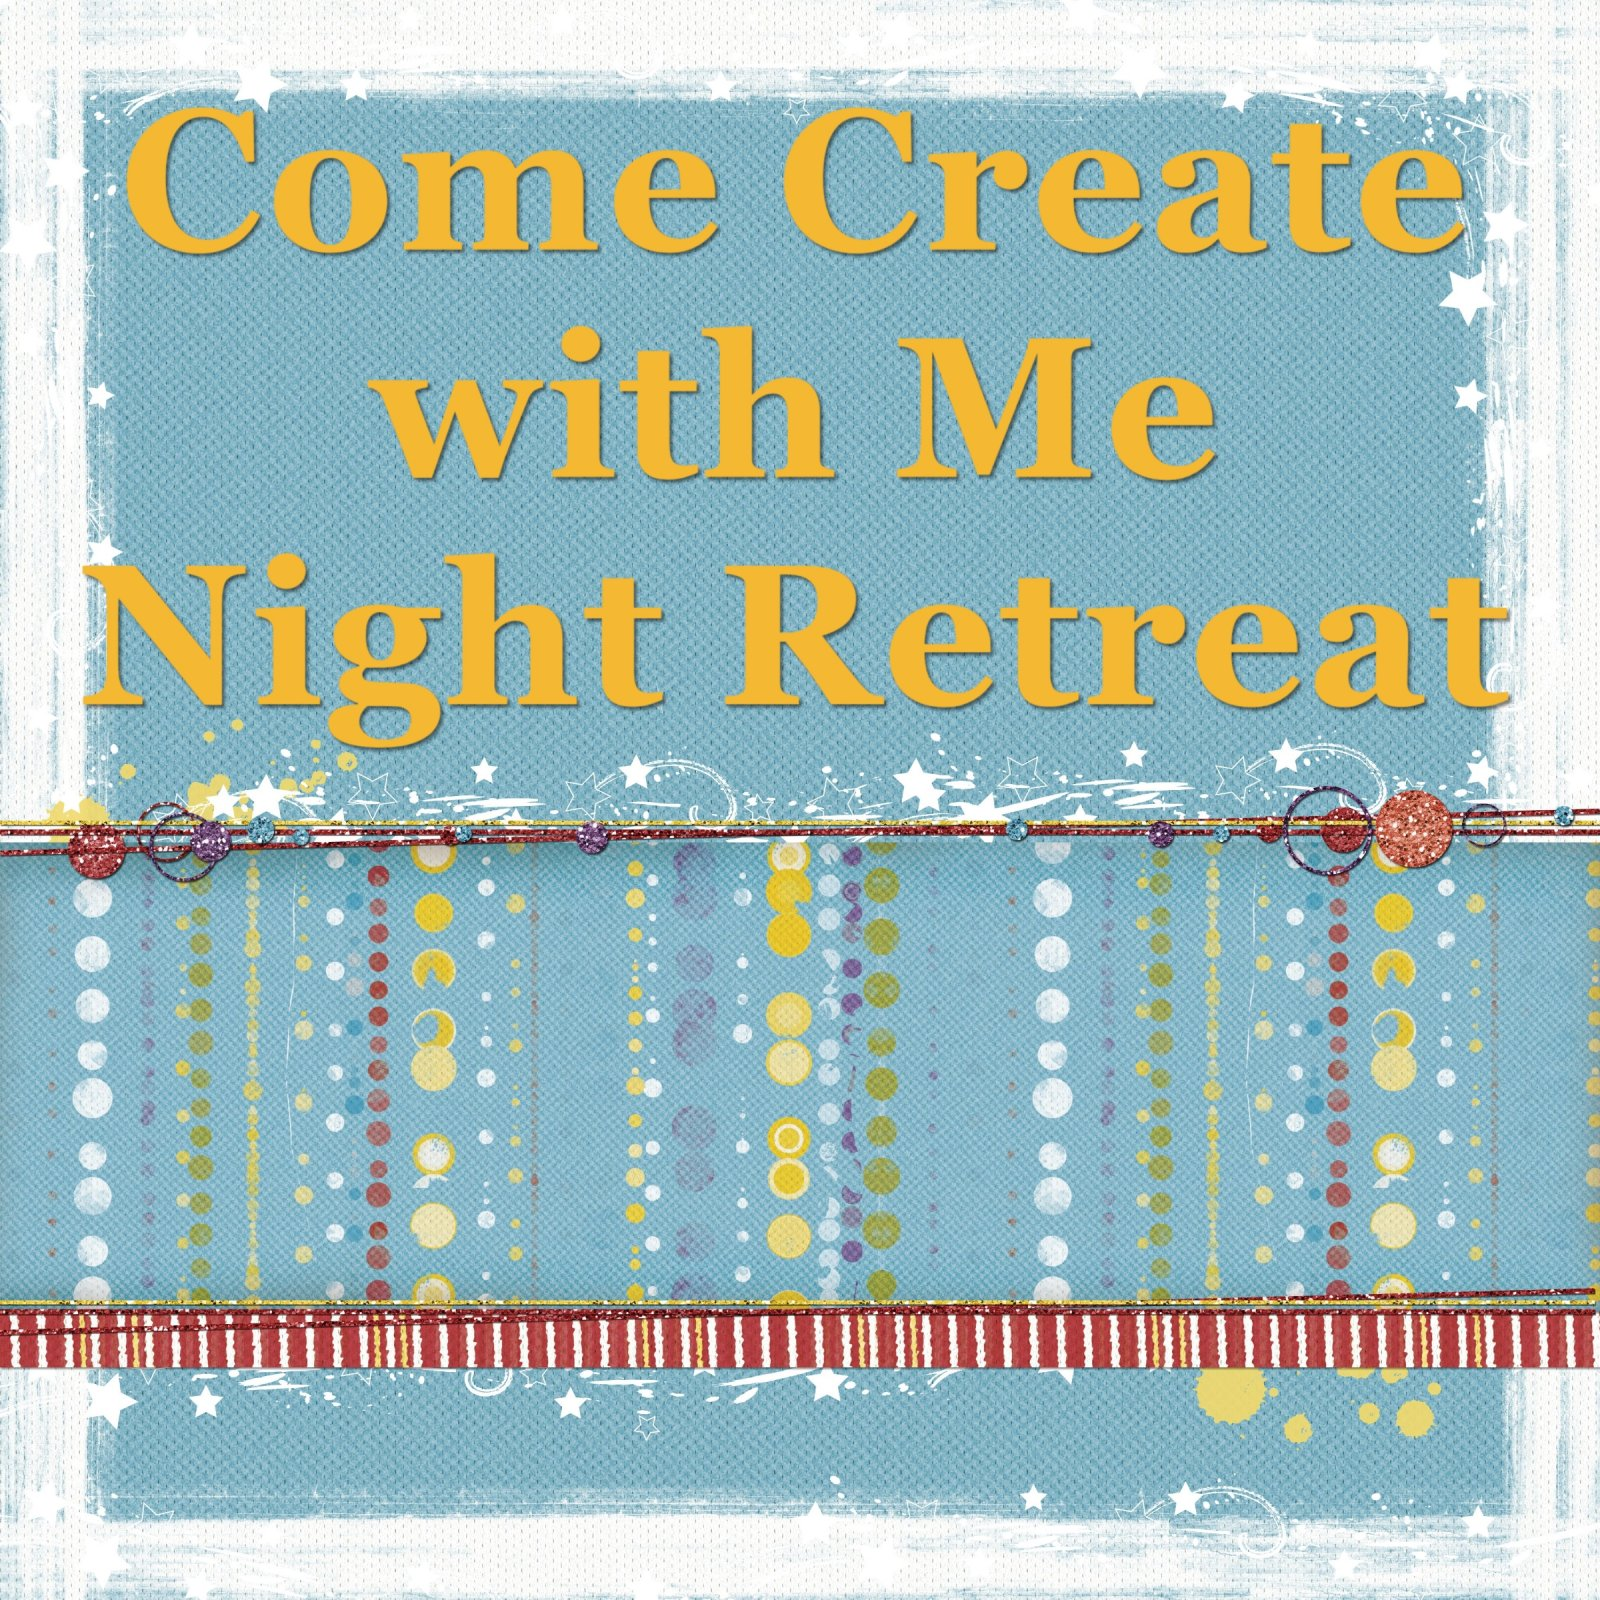 Come Create with Me Night Retreat--December 2, 2021